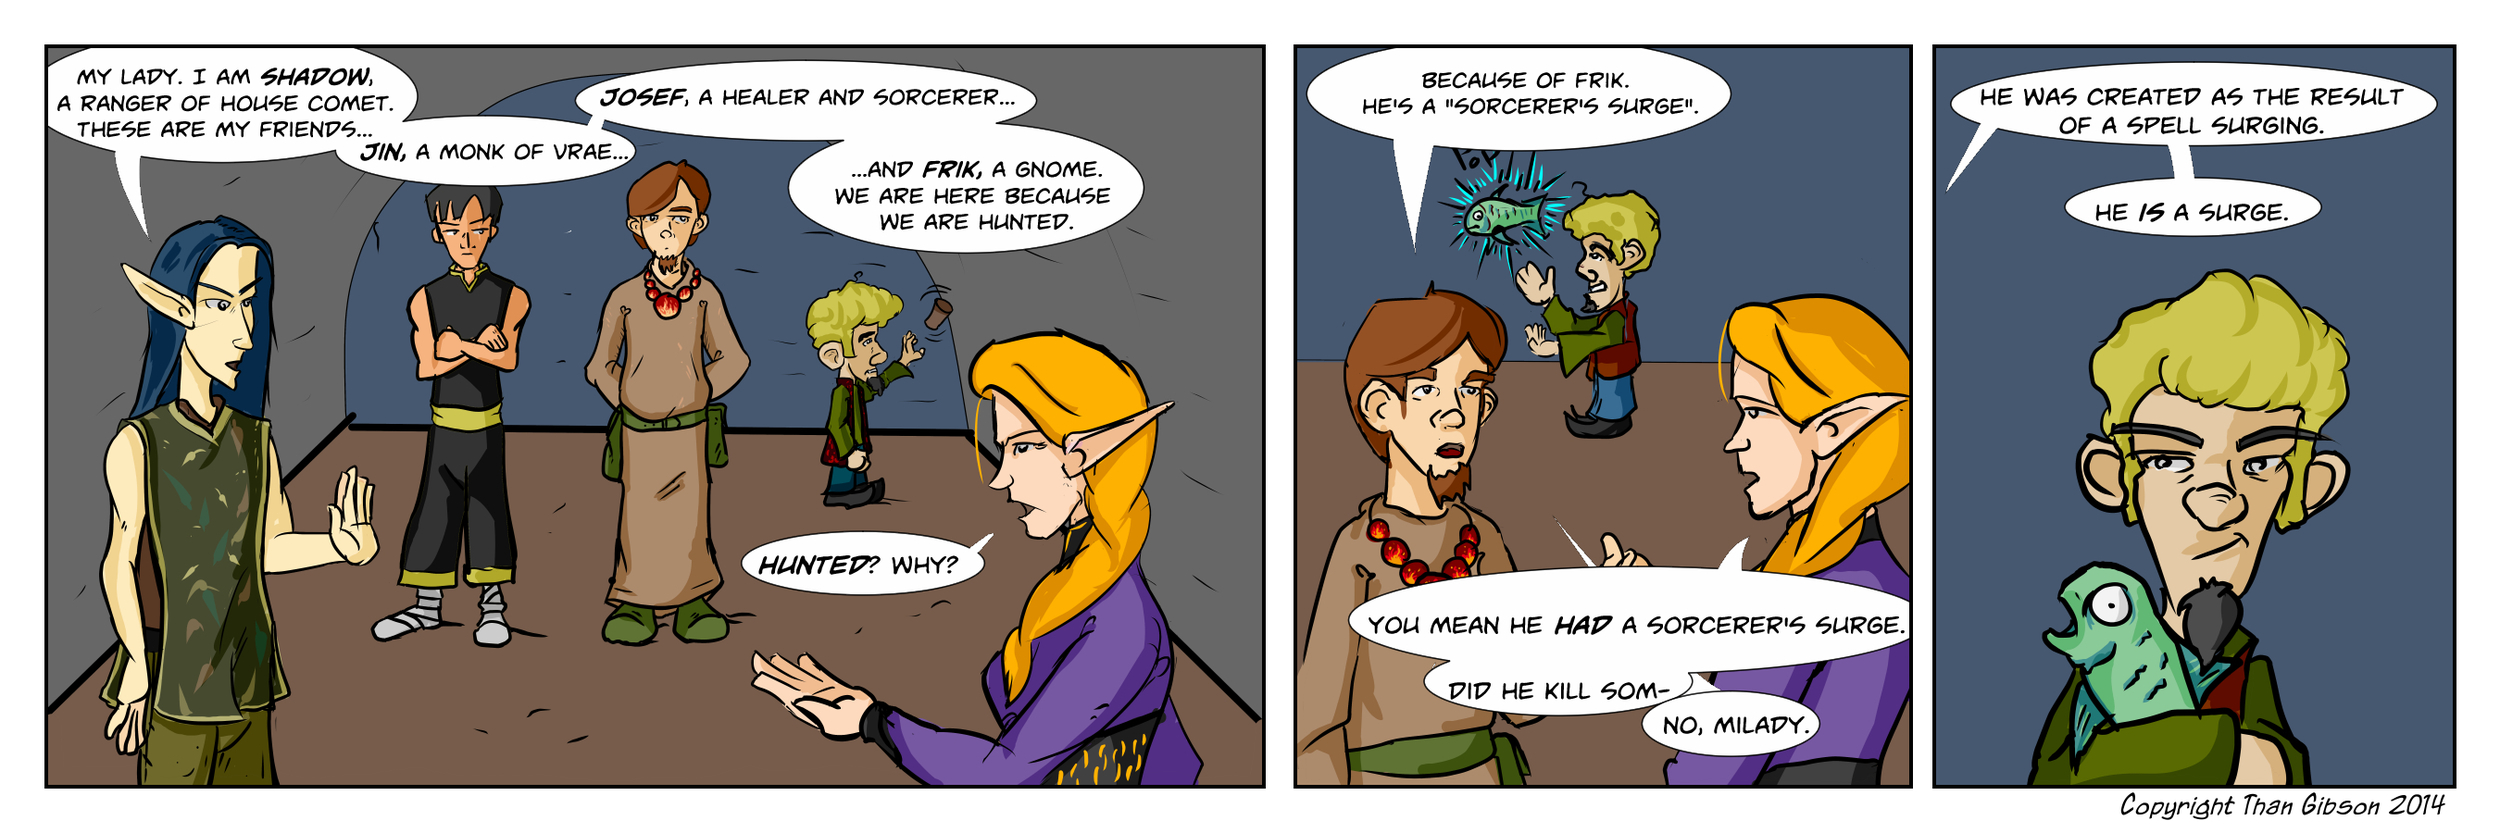 Strip 20 -Click the image for a larger view!